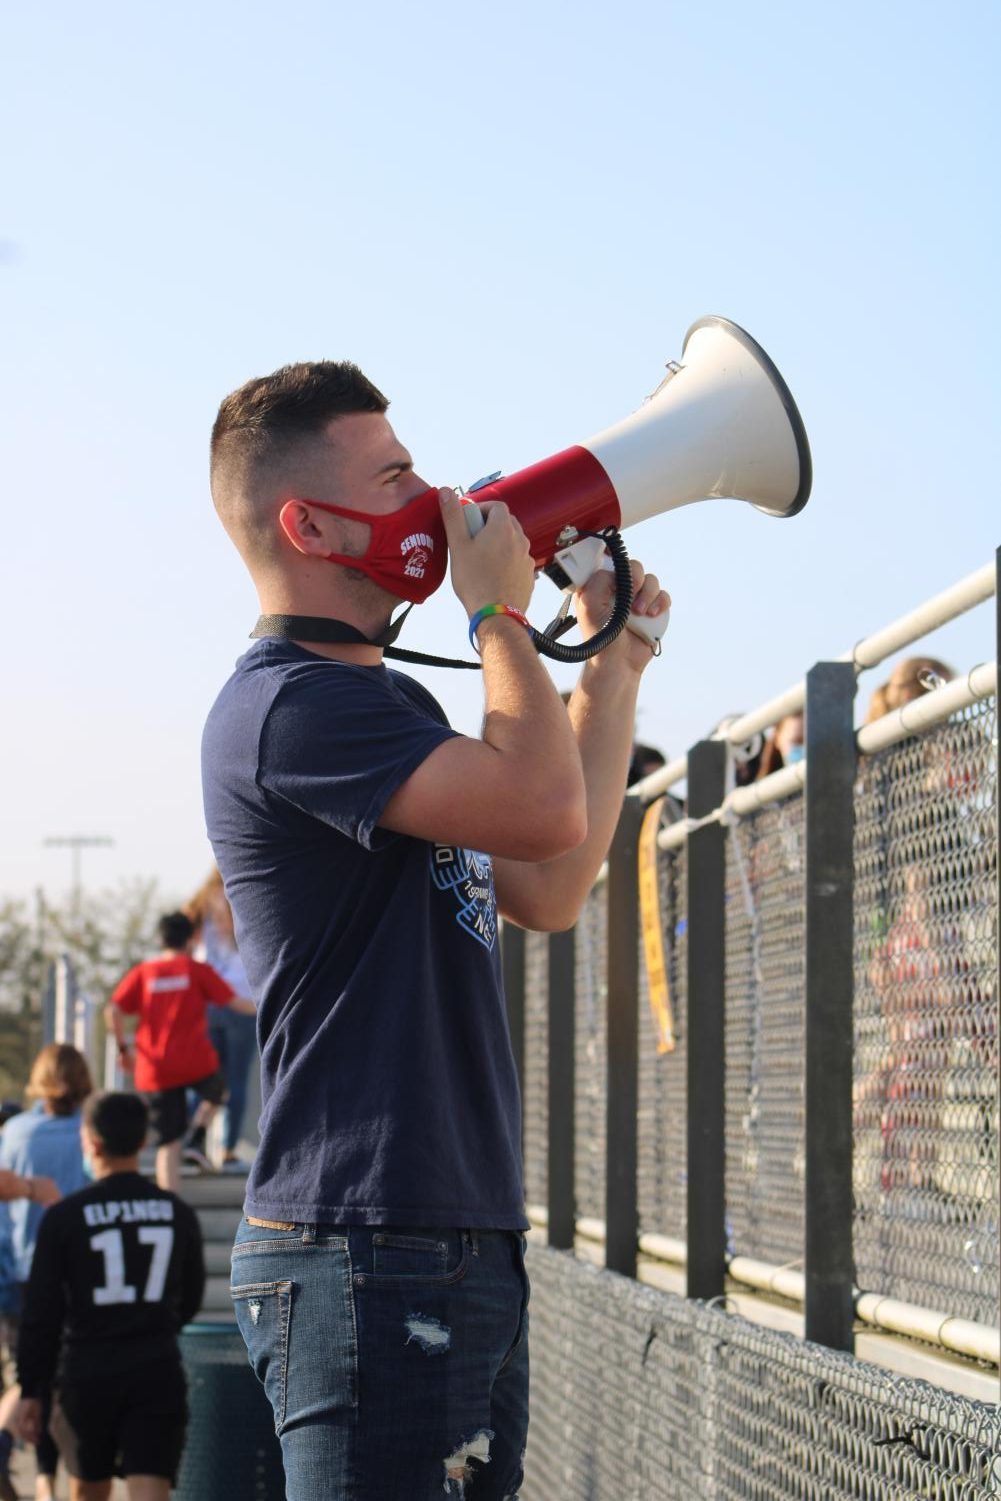 Logan King speaks through a megaphone while wearing his mask.